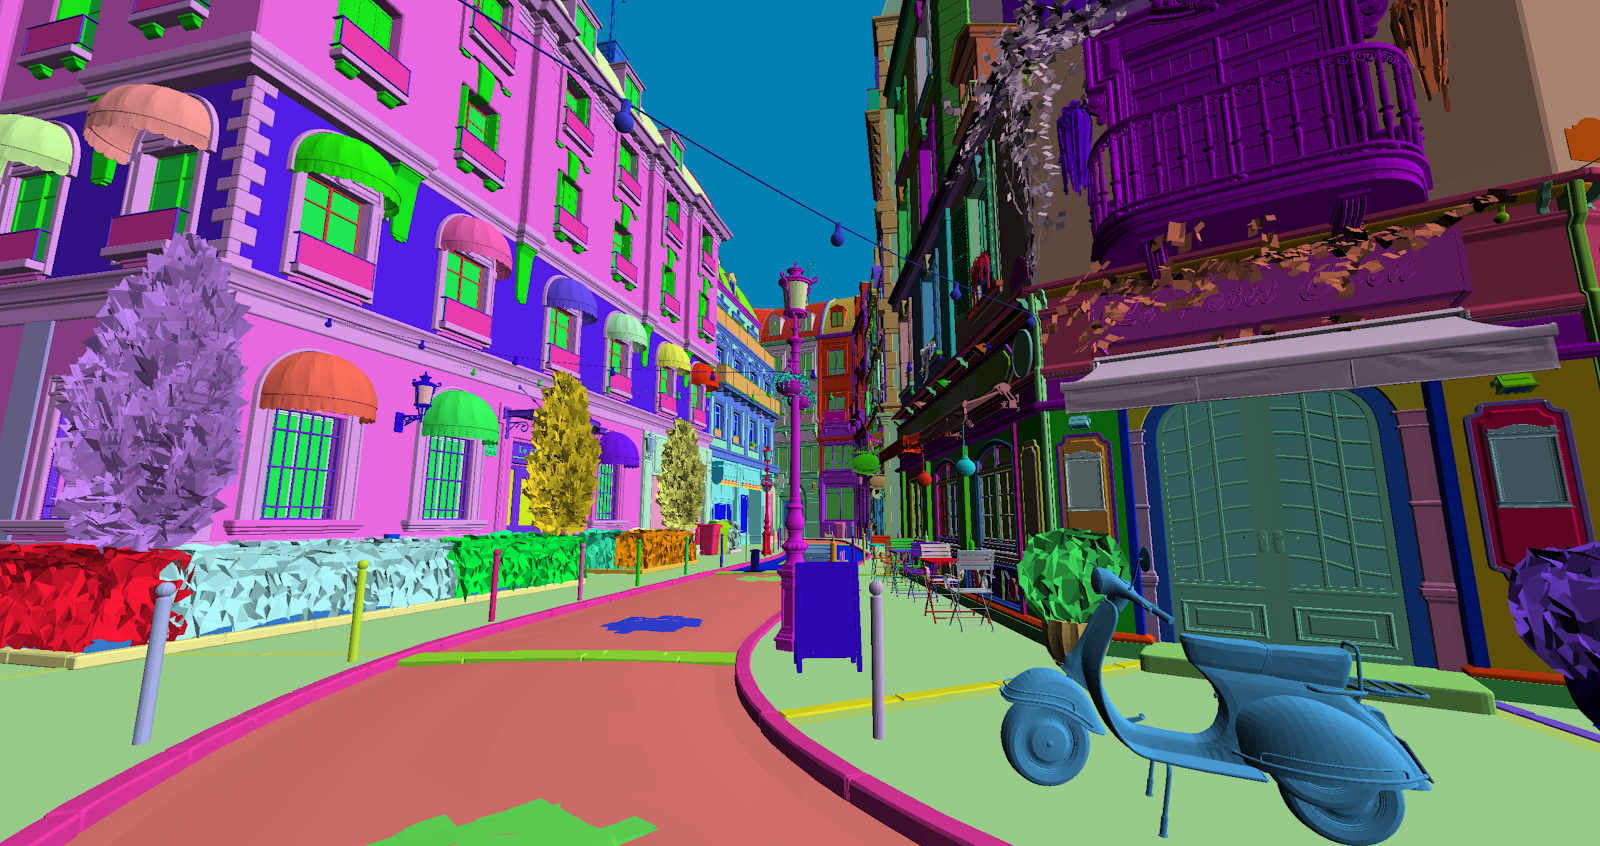 Visualization of primary ray hits coloring objects in the scene based on their instance IDs.